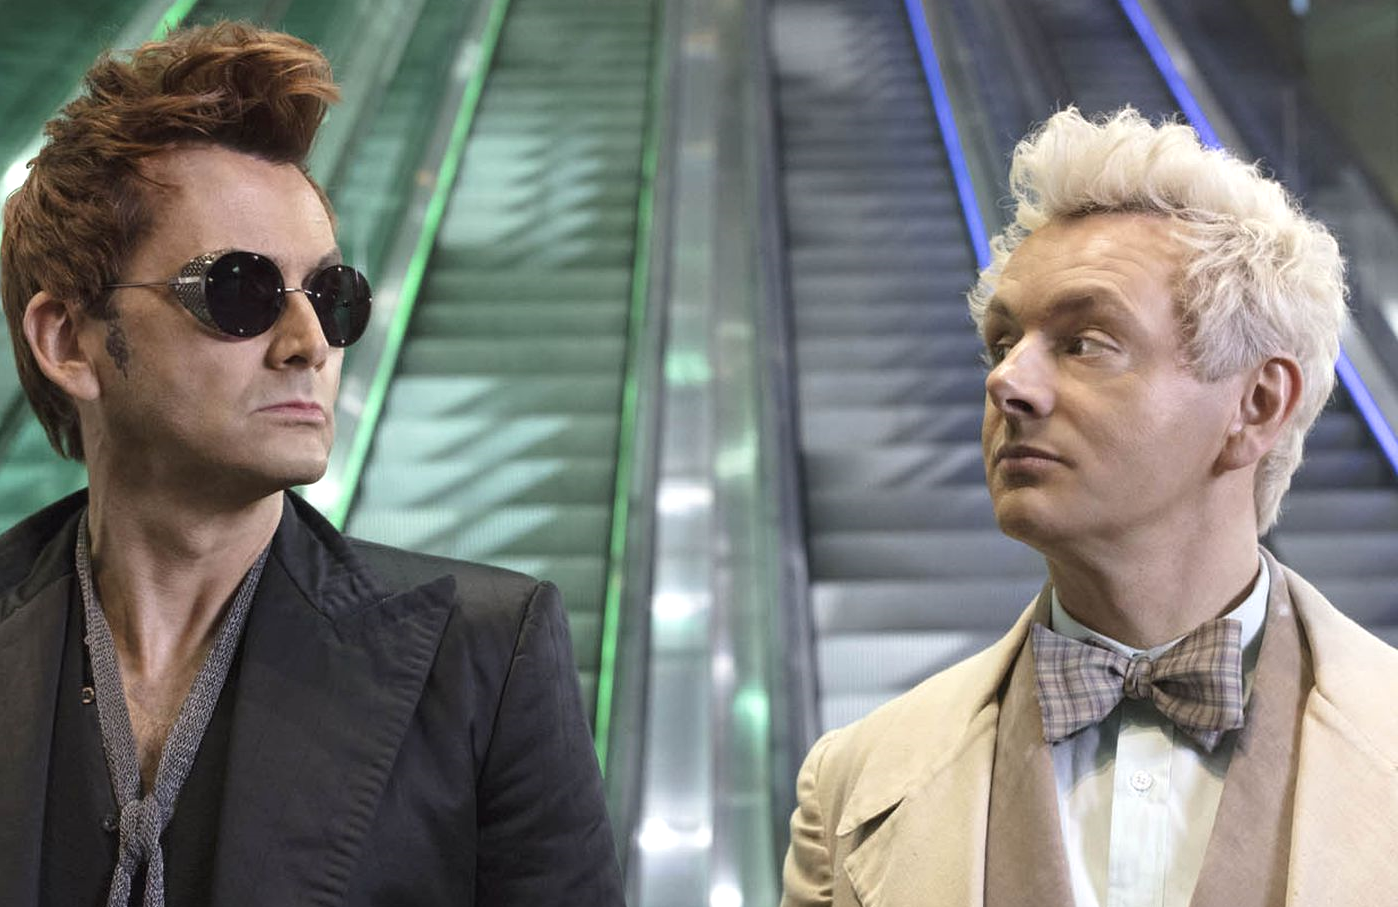 David Tennant and Michael Sheen in Good Omens (Amazon)